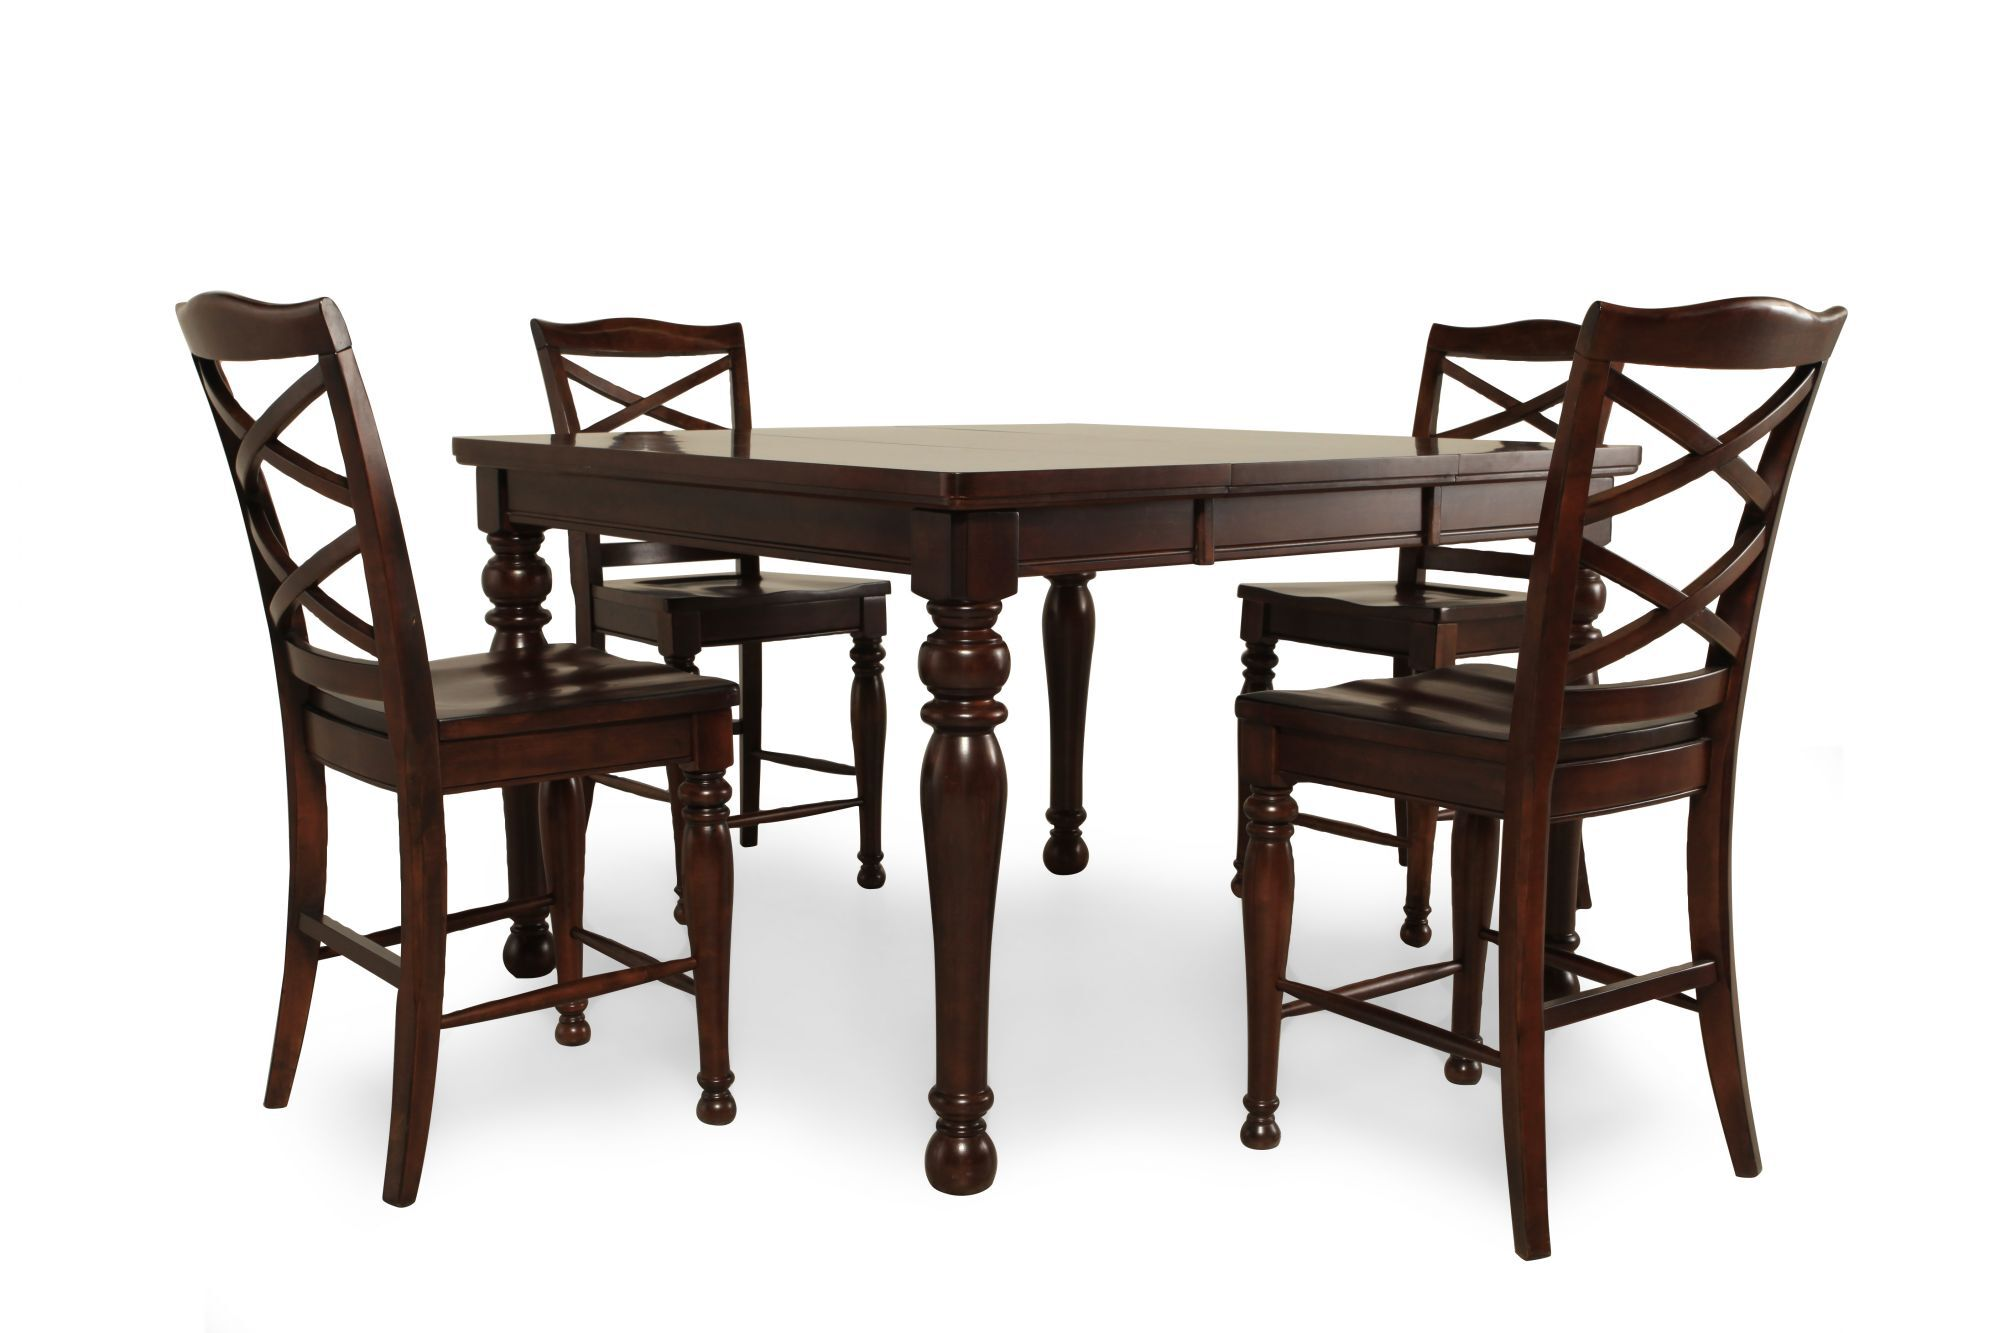 Images Five-Piece Traditional 36u0026quot; Pub Set in Rich Espresso Five-Piece Traditional 36u0026quot; Pub Set in Rich Espresso  sc 1 st  Mathis Brothers & Five-Piece Traditional 36